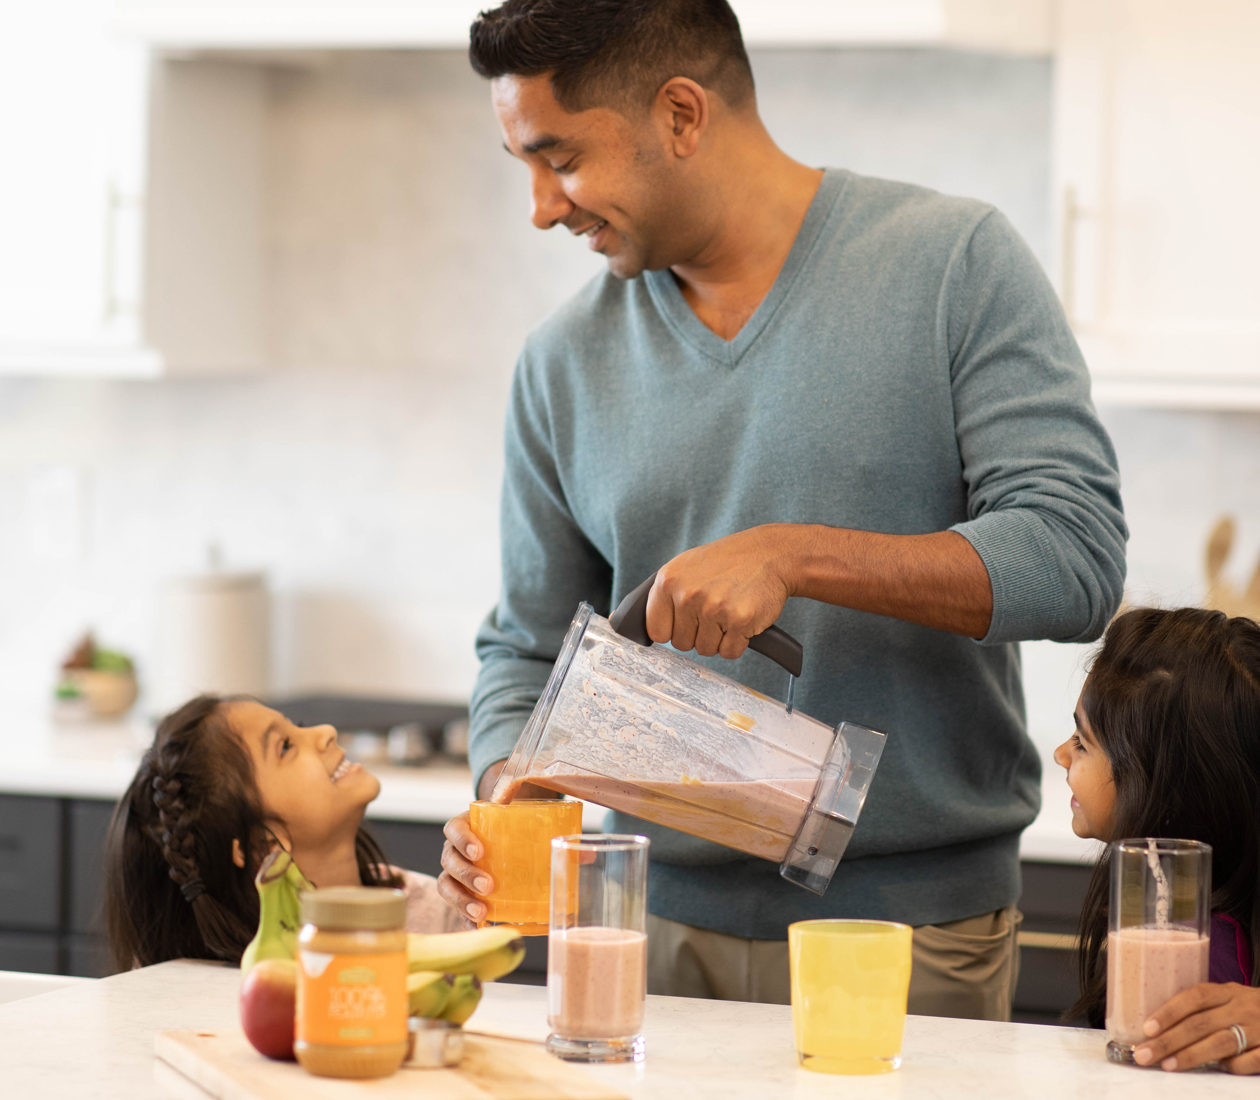 A father pouring a peanut butter smoothie for his daughter